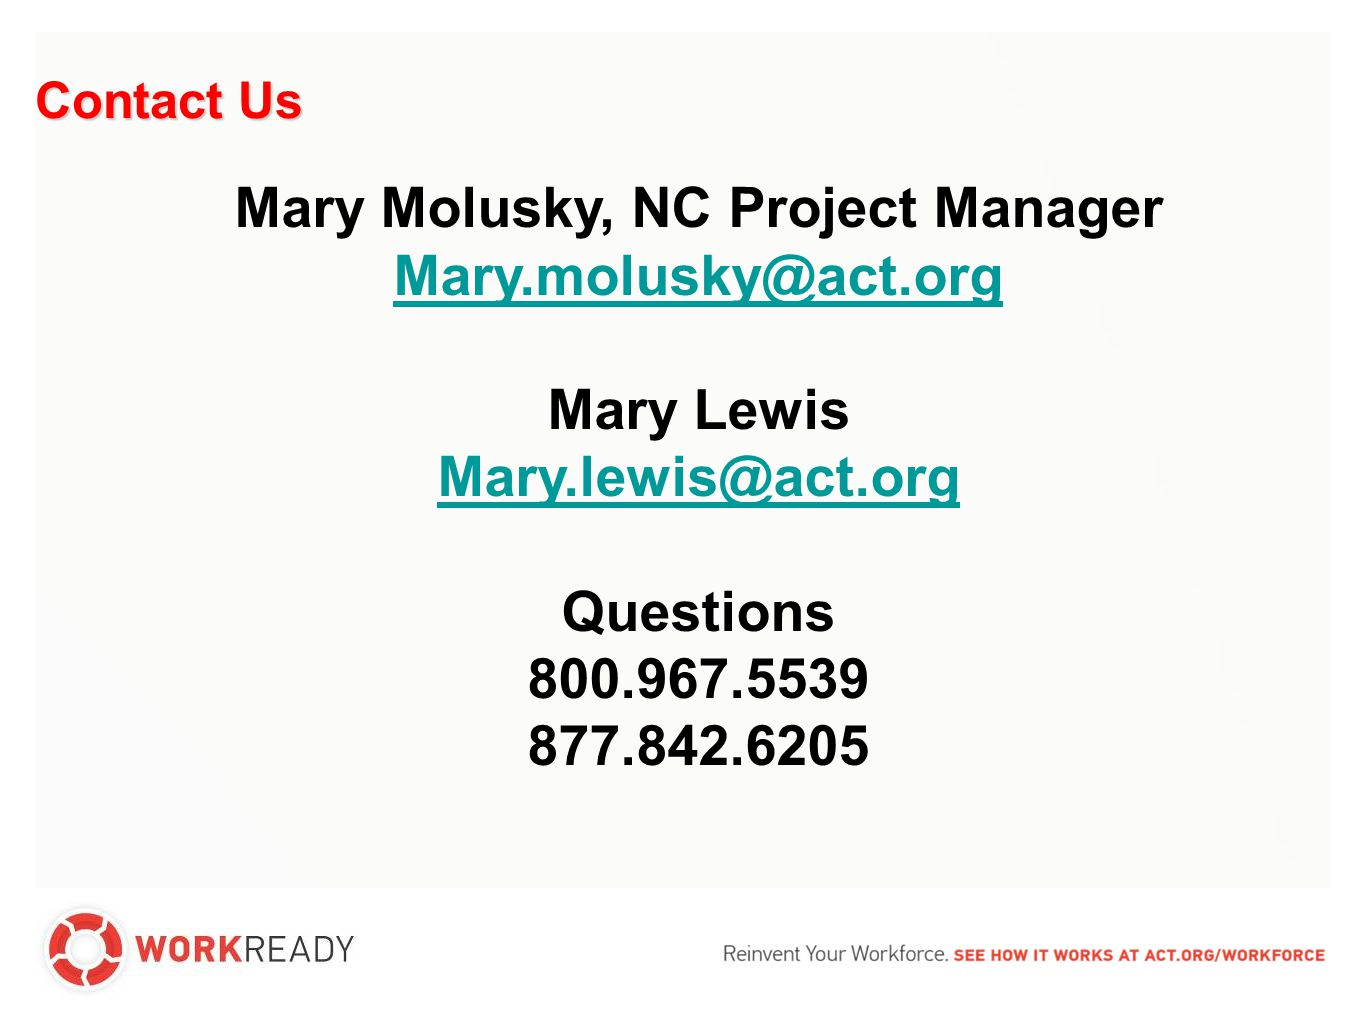 Contact Us Mary Molusky, NC Project Manager Mary.molusky@act.org Mary Lewis Mary.lewis@act.org Questions 800.967.5539 877.842.6205